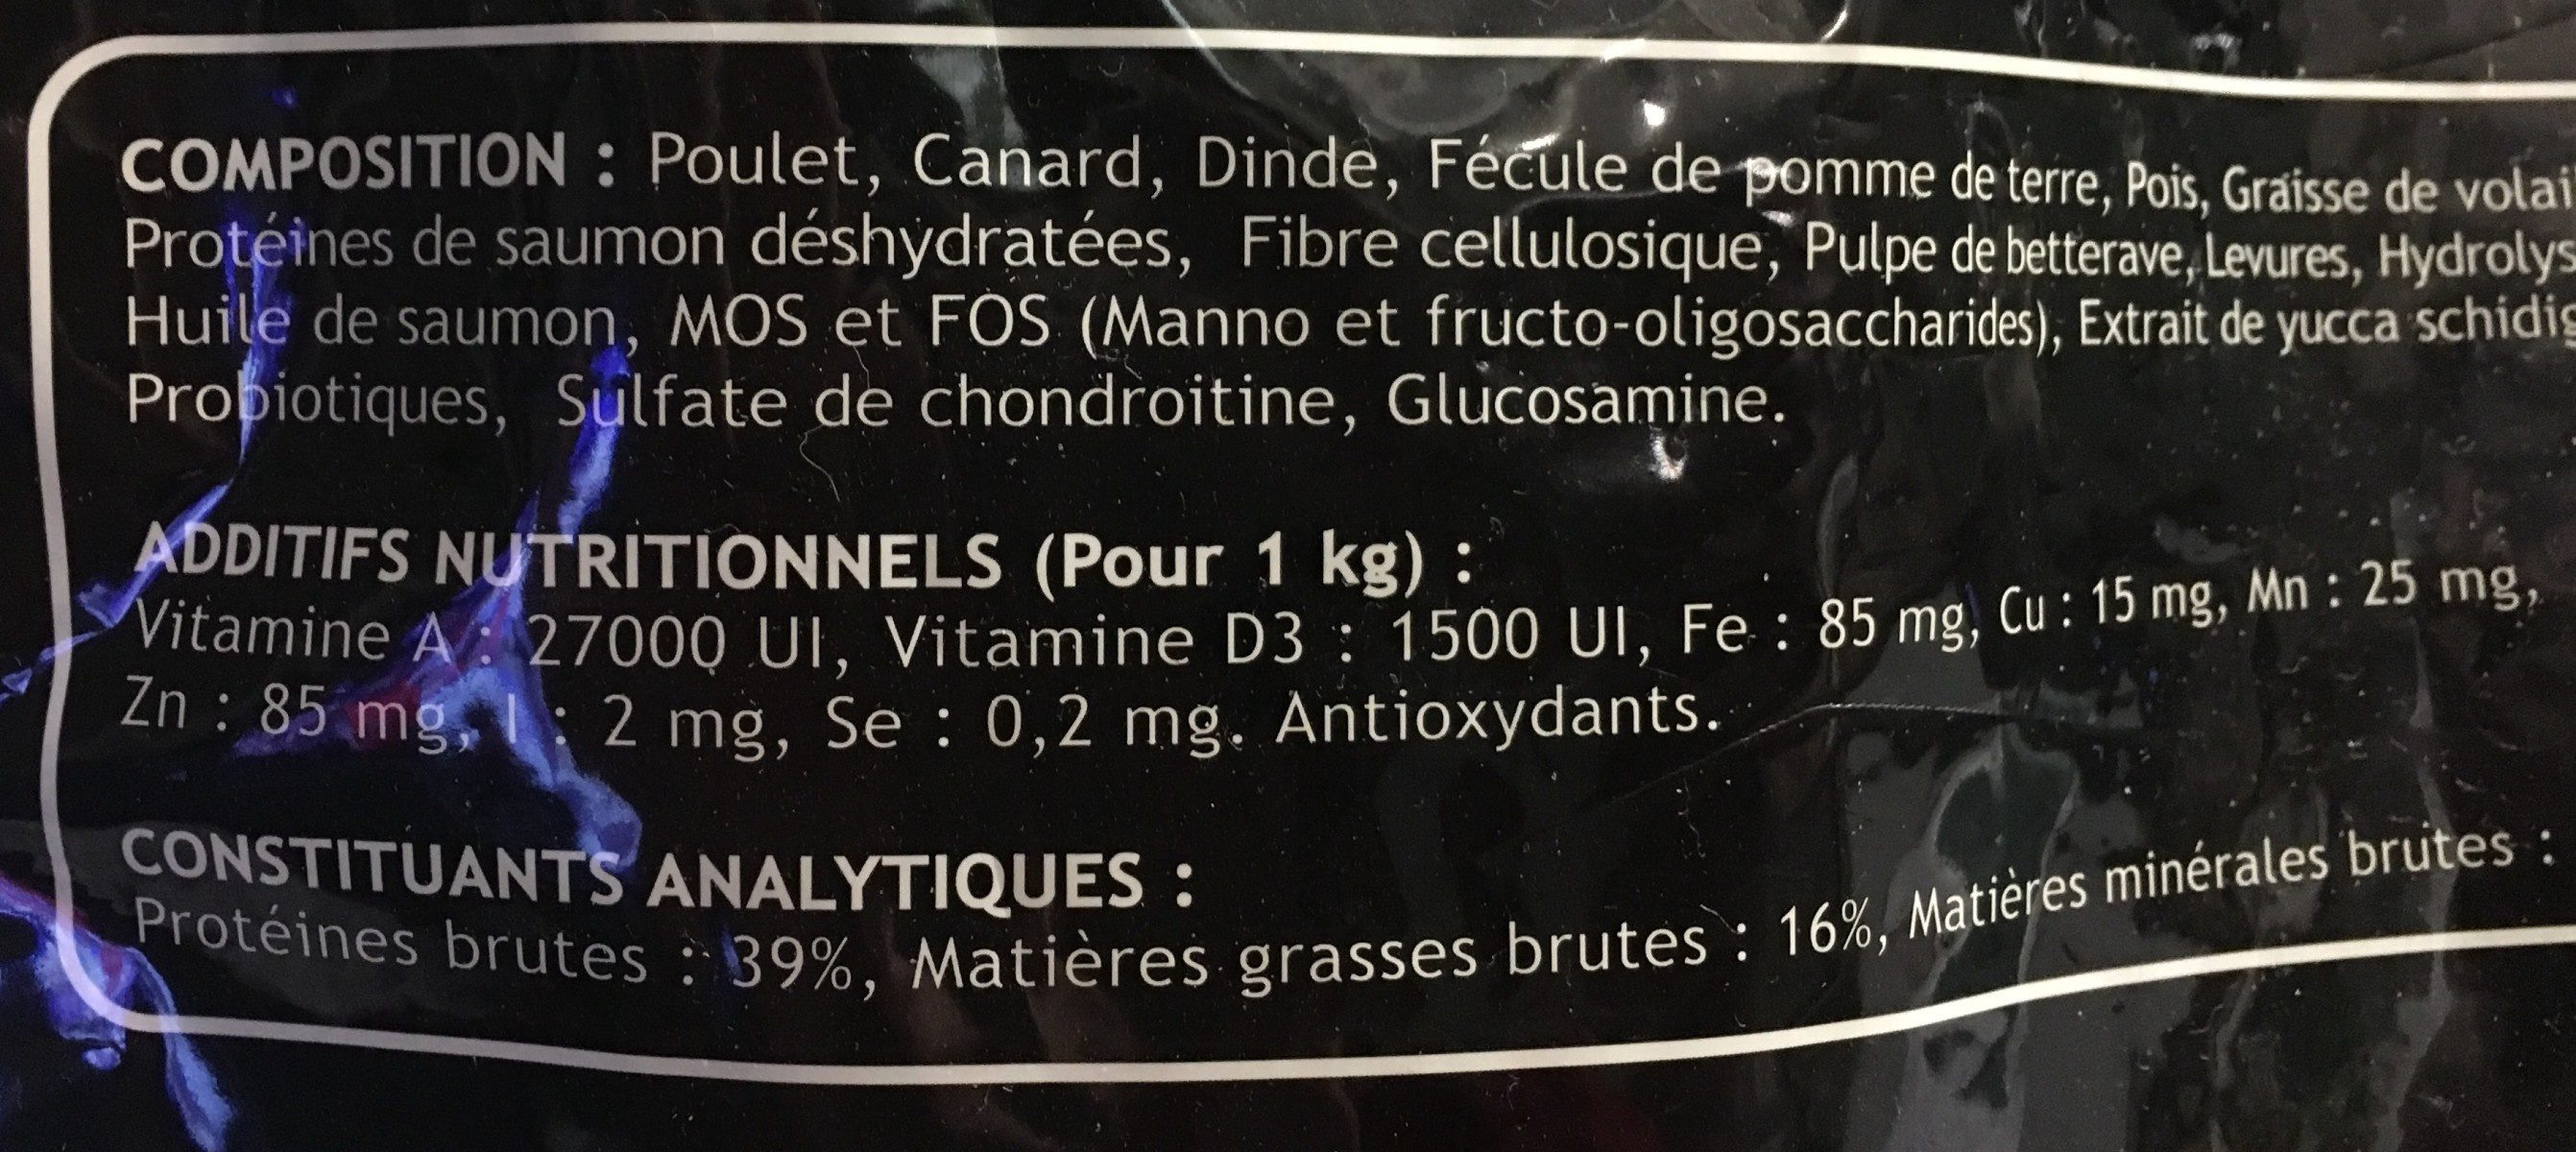 Croquettes pour chat - Ingredients - fr